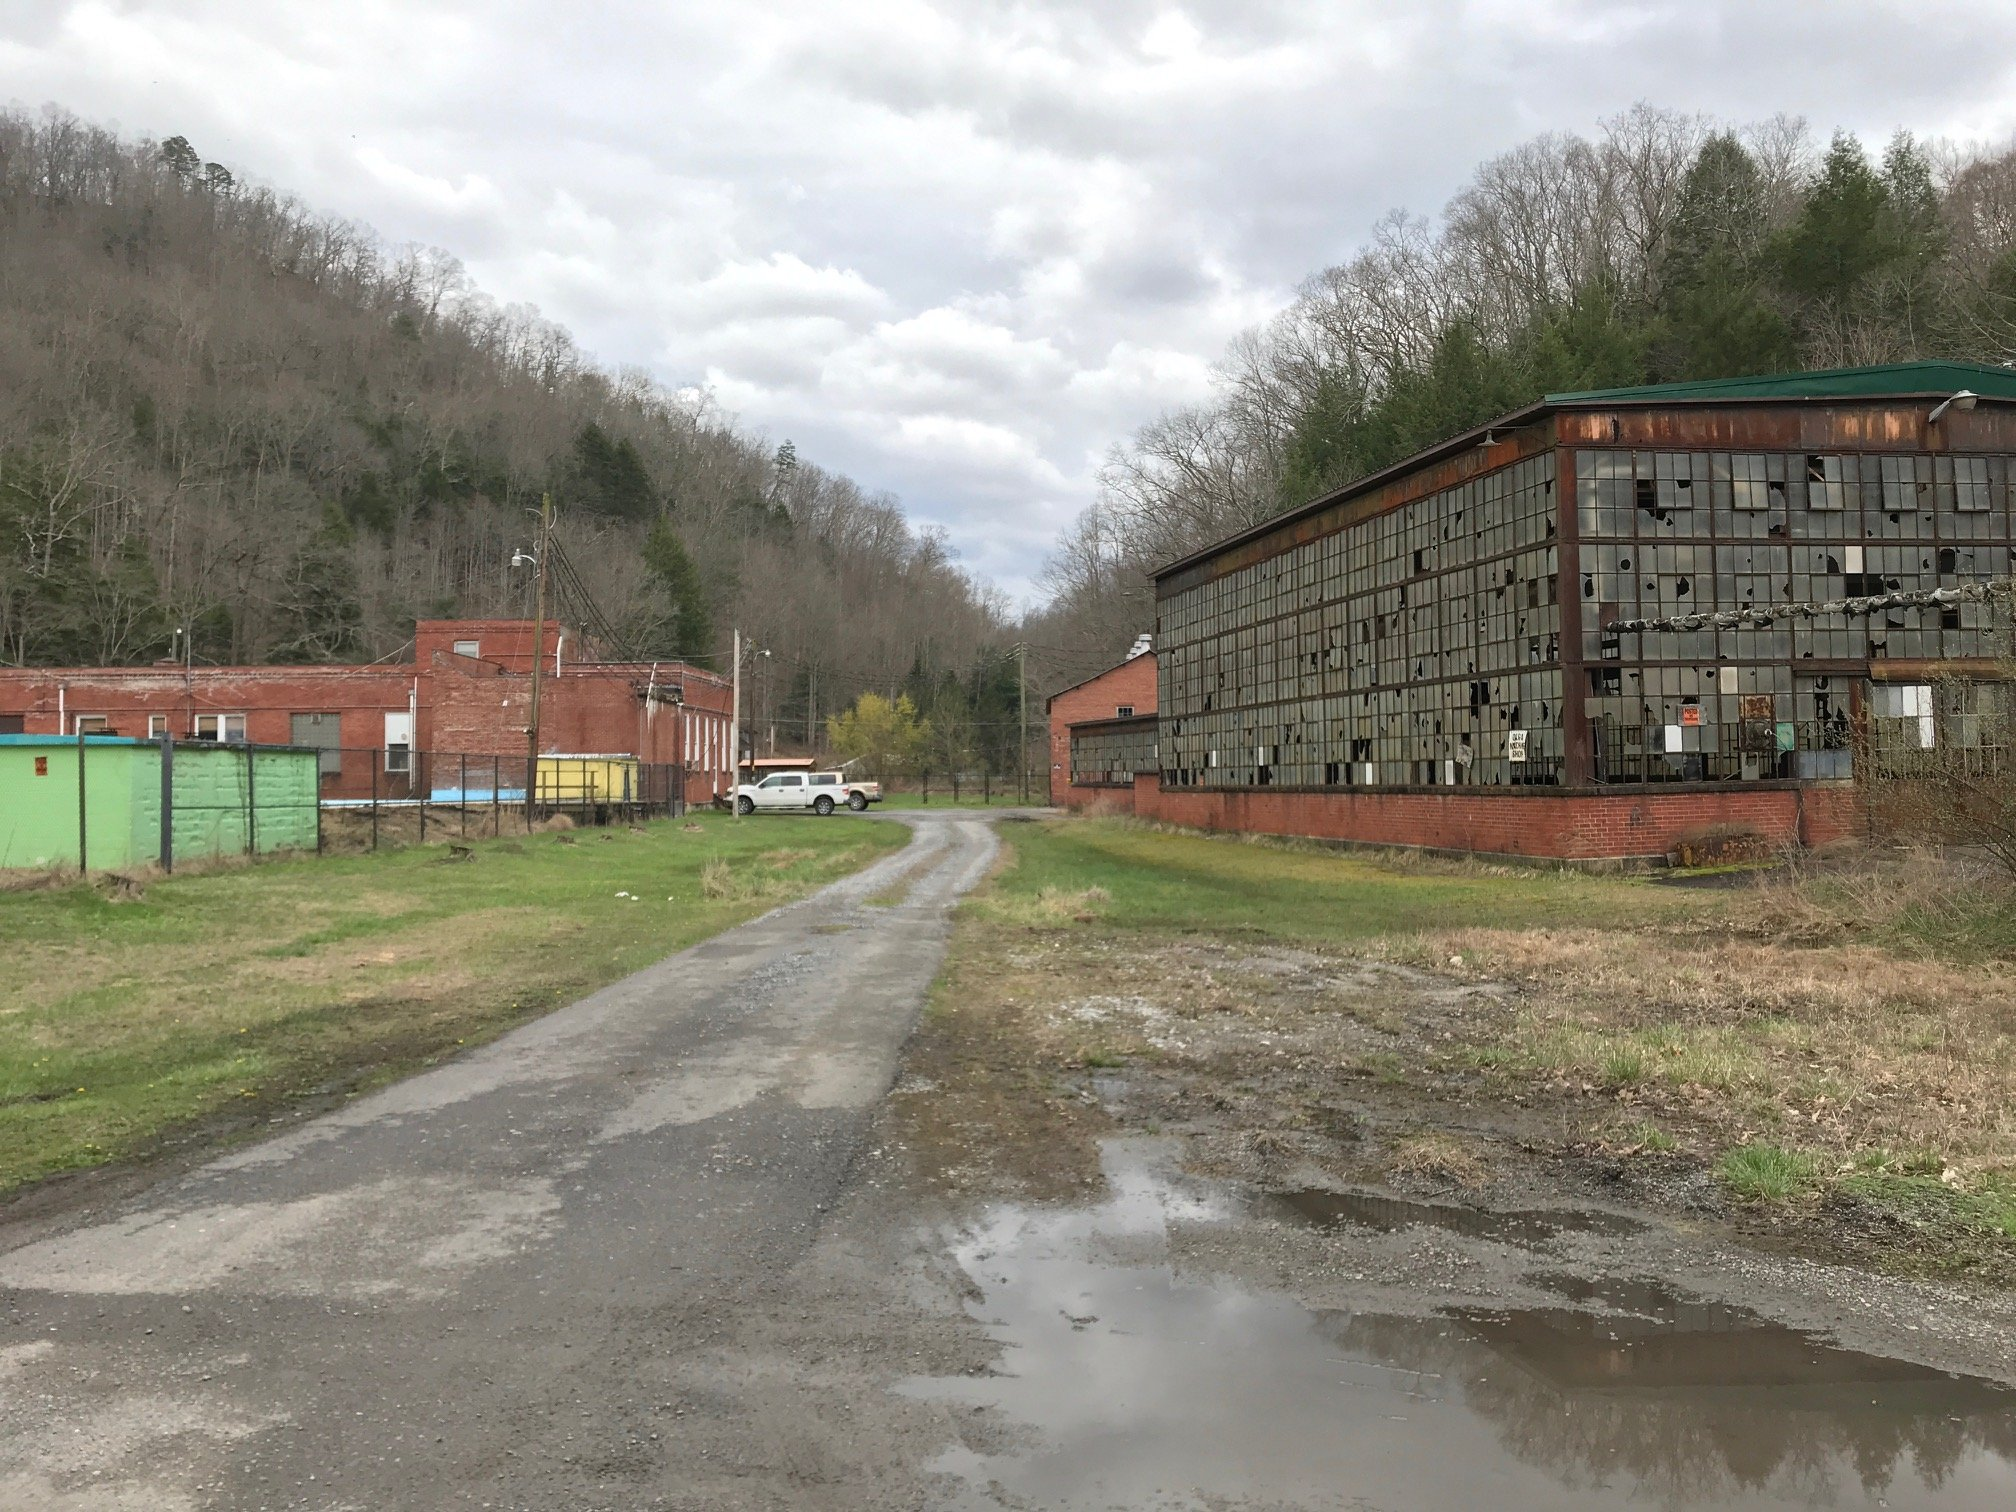 Former site of the big store on the left (demolished), and the machine shop on the right.